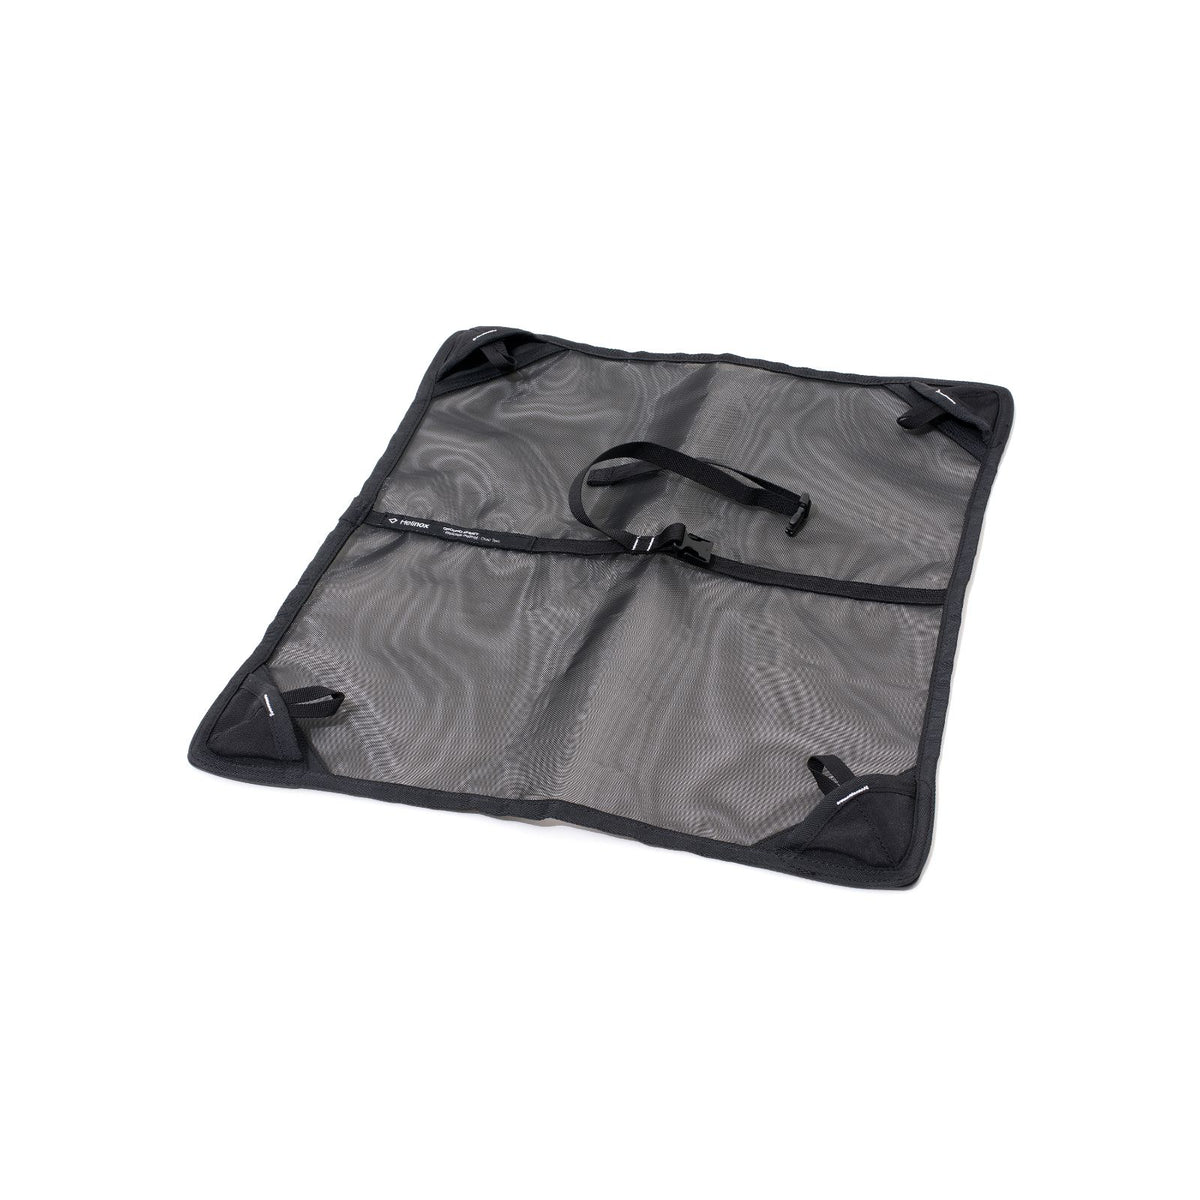 Helinox Ground Sheet for Chair Two